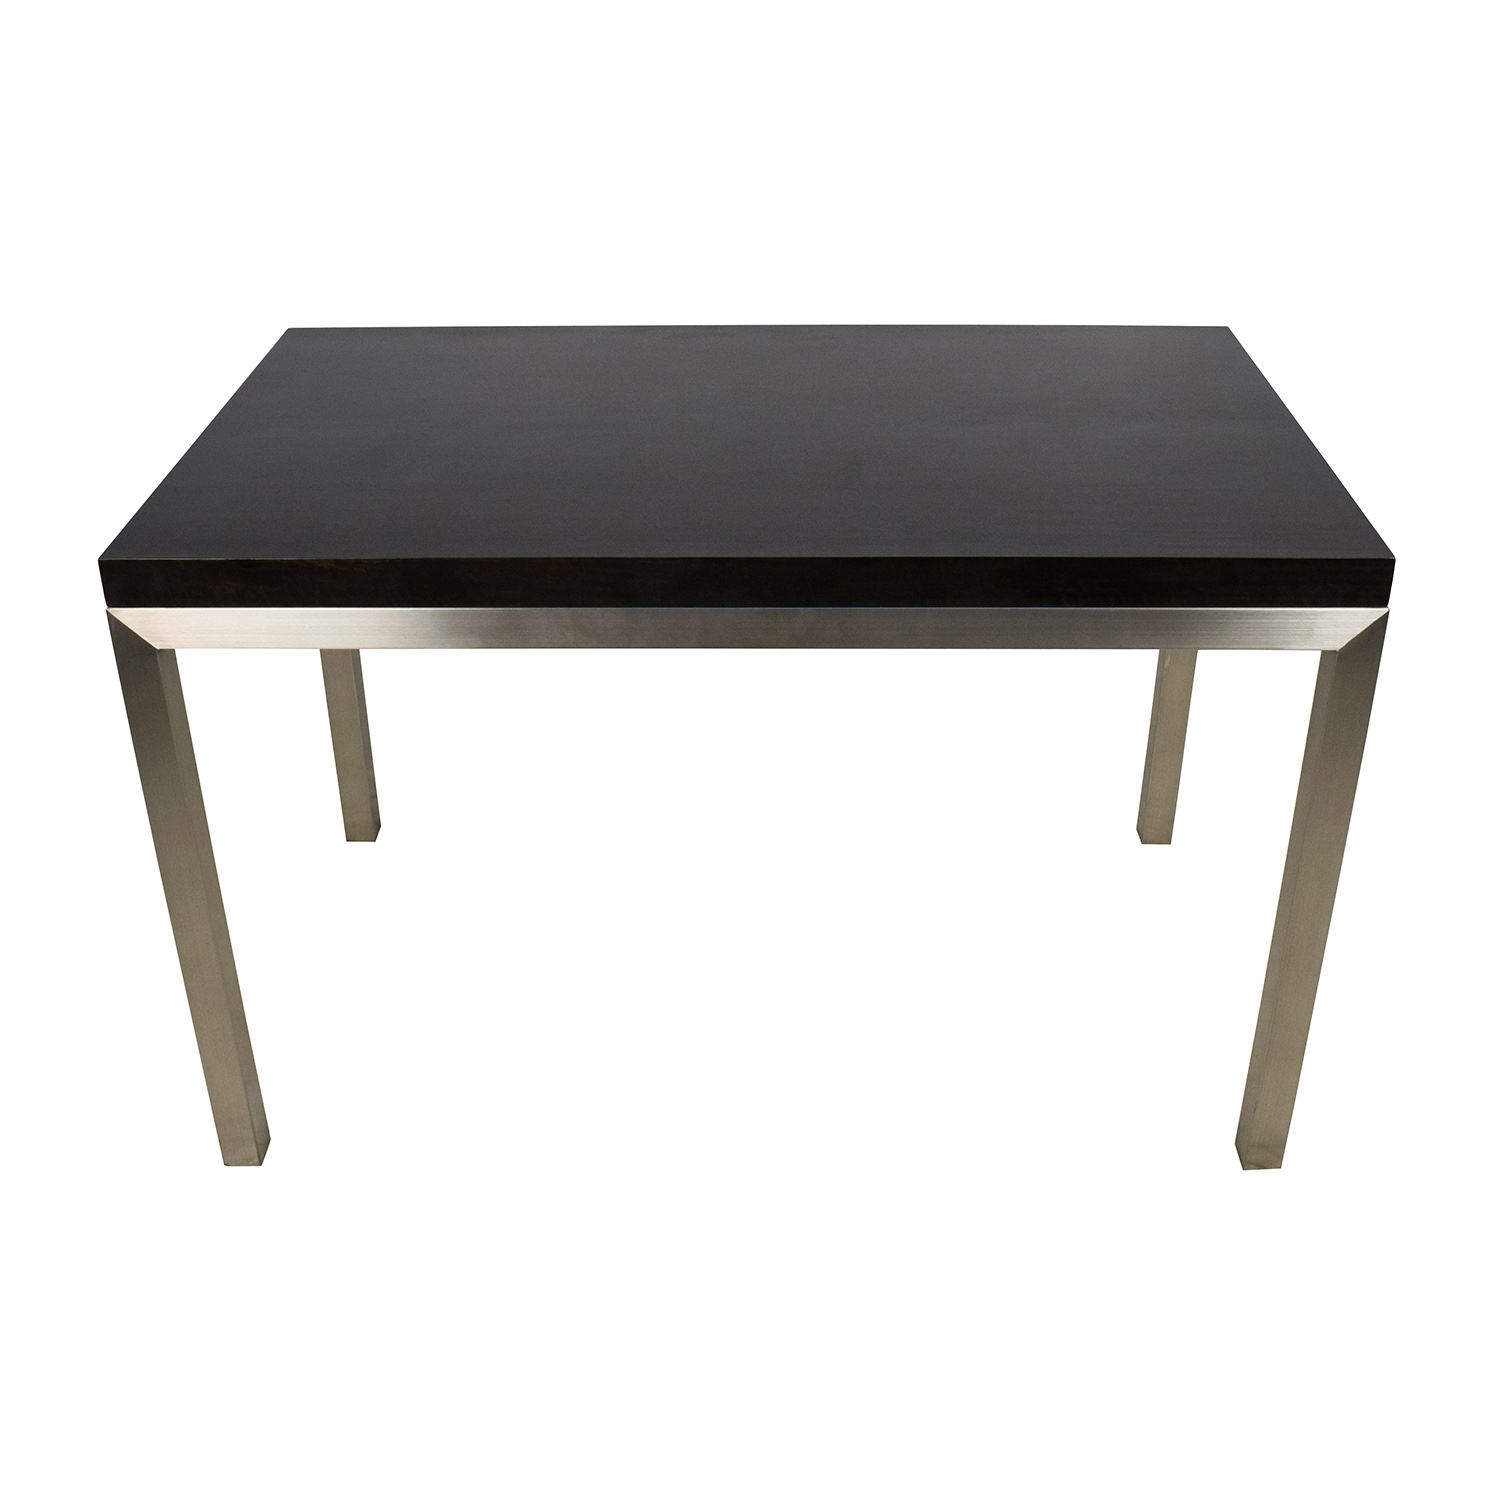 shop Crate and Barrel Crate & Barrel Parsons Dining Table online